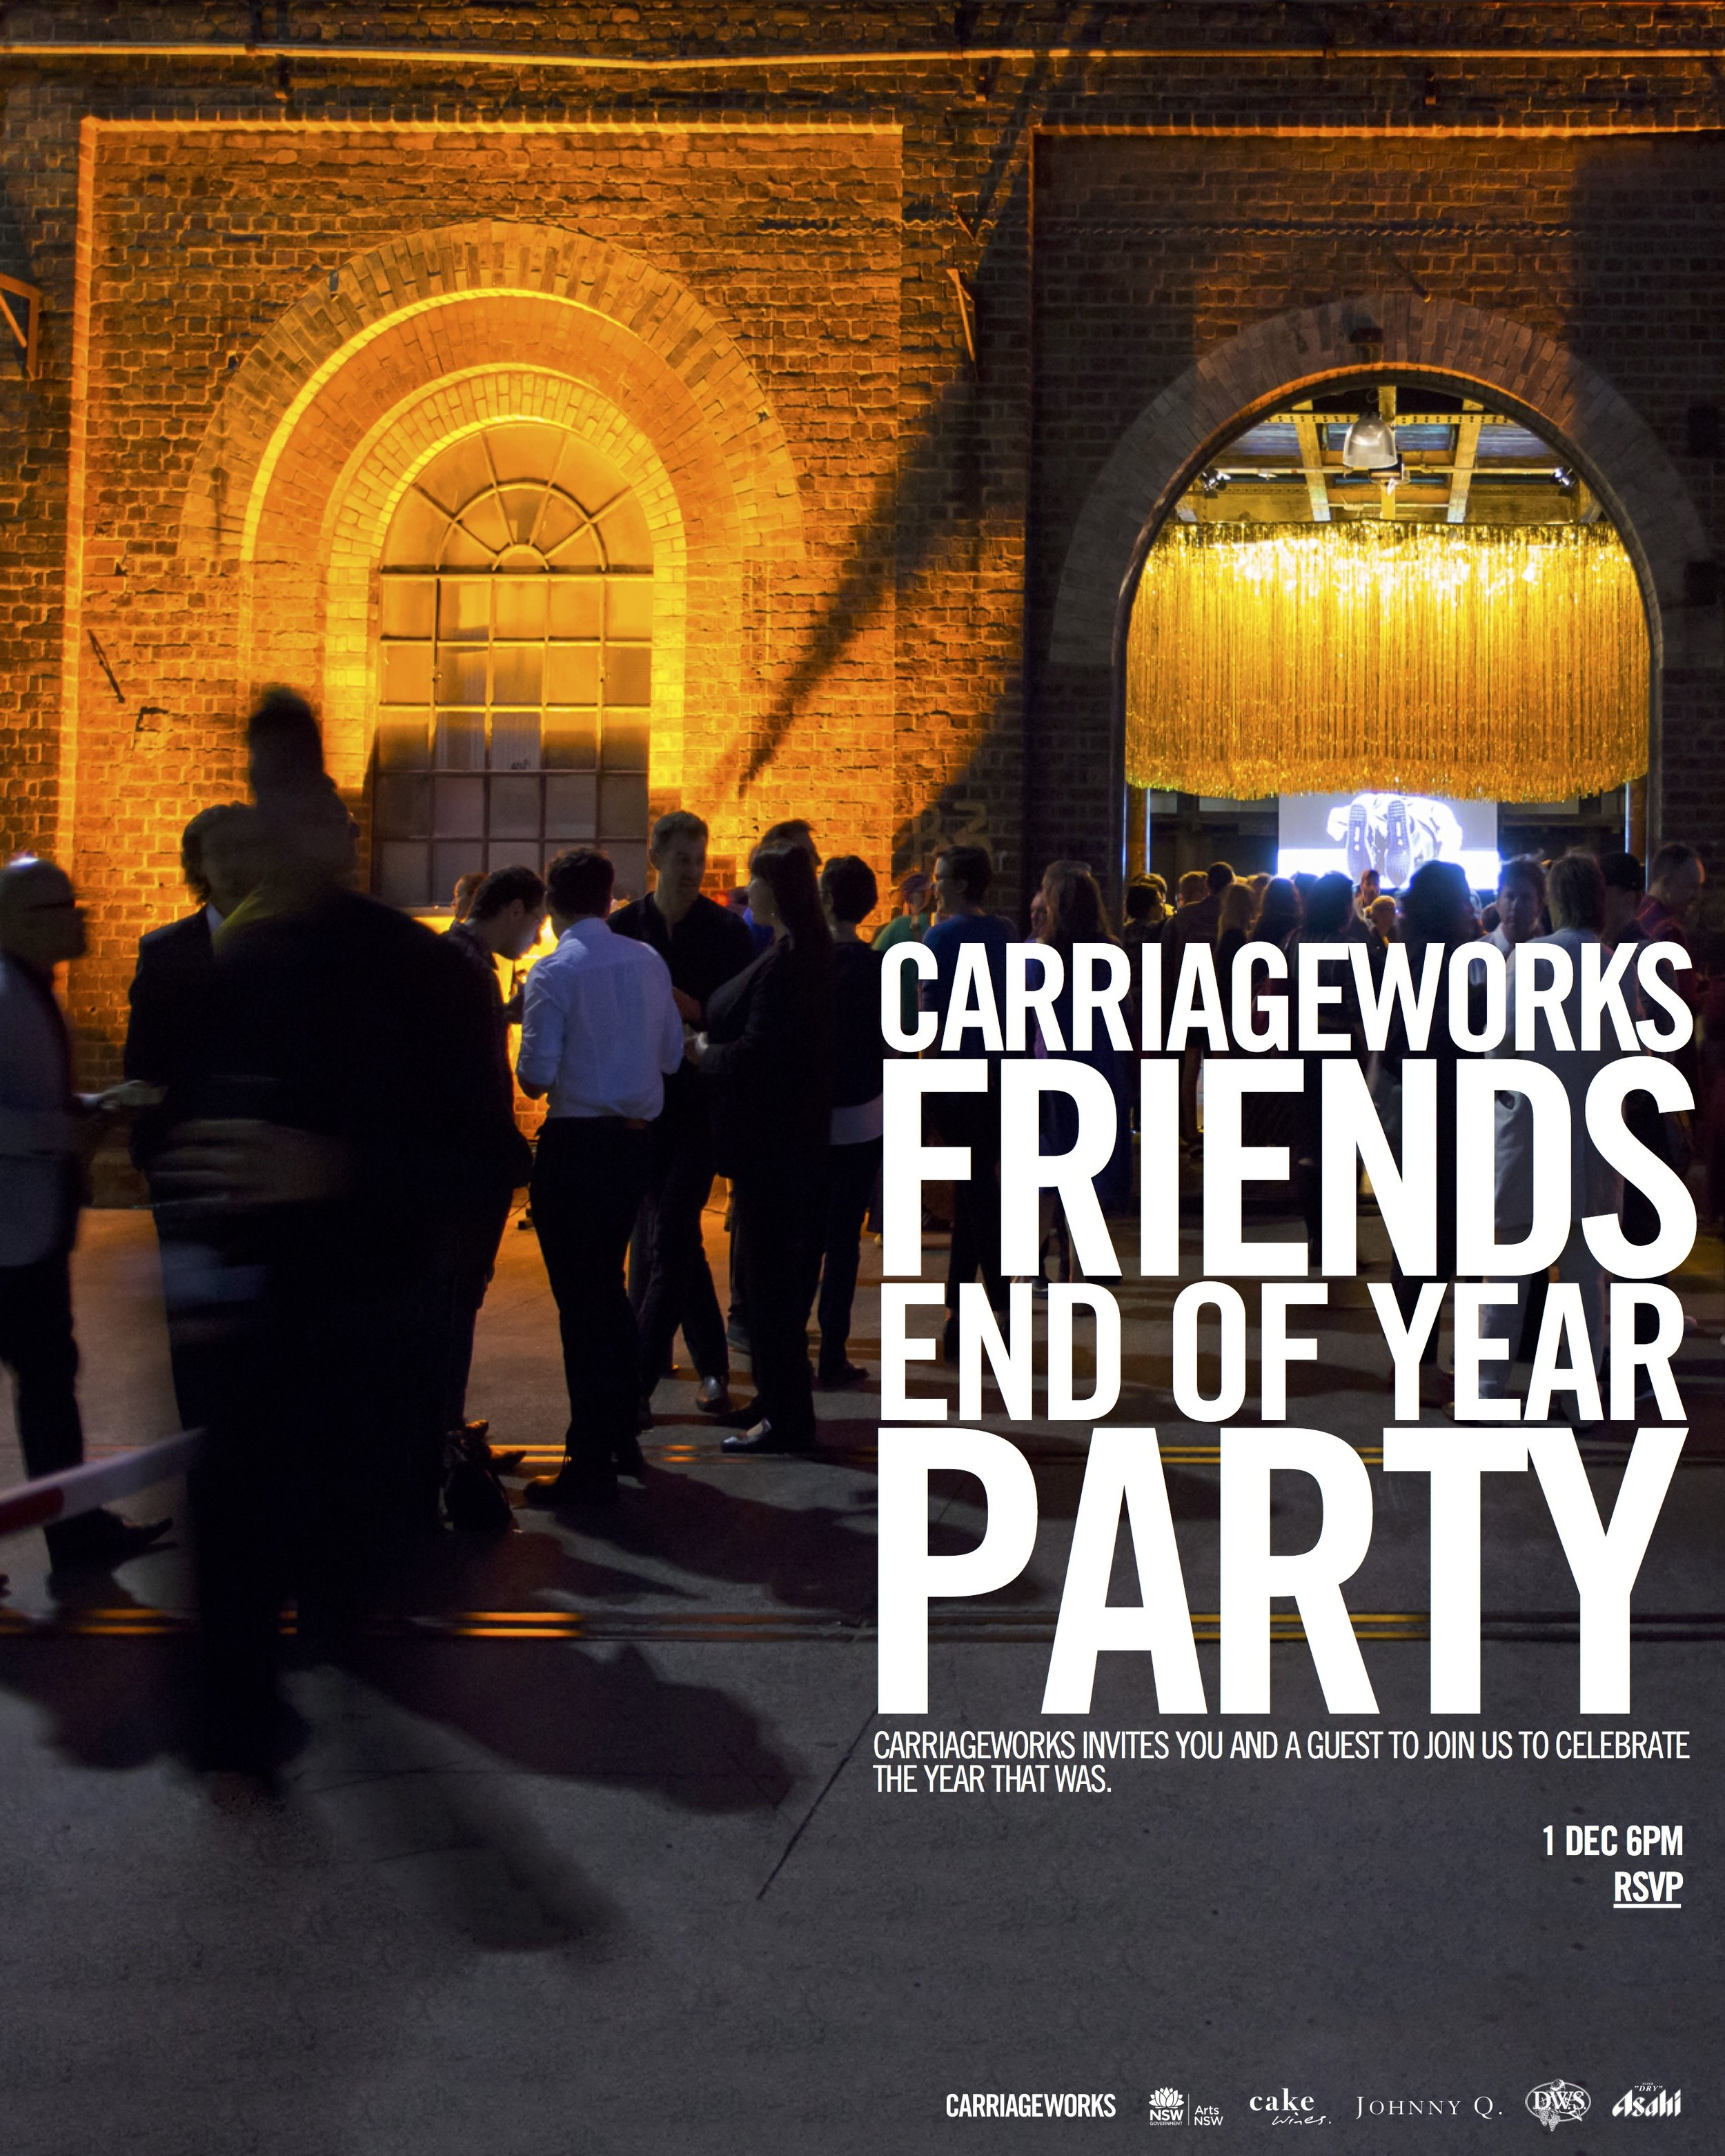 Friends End of the Year Party at Carriageworks e-invite